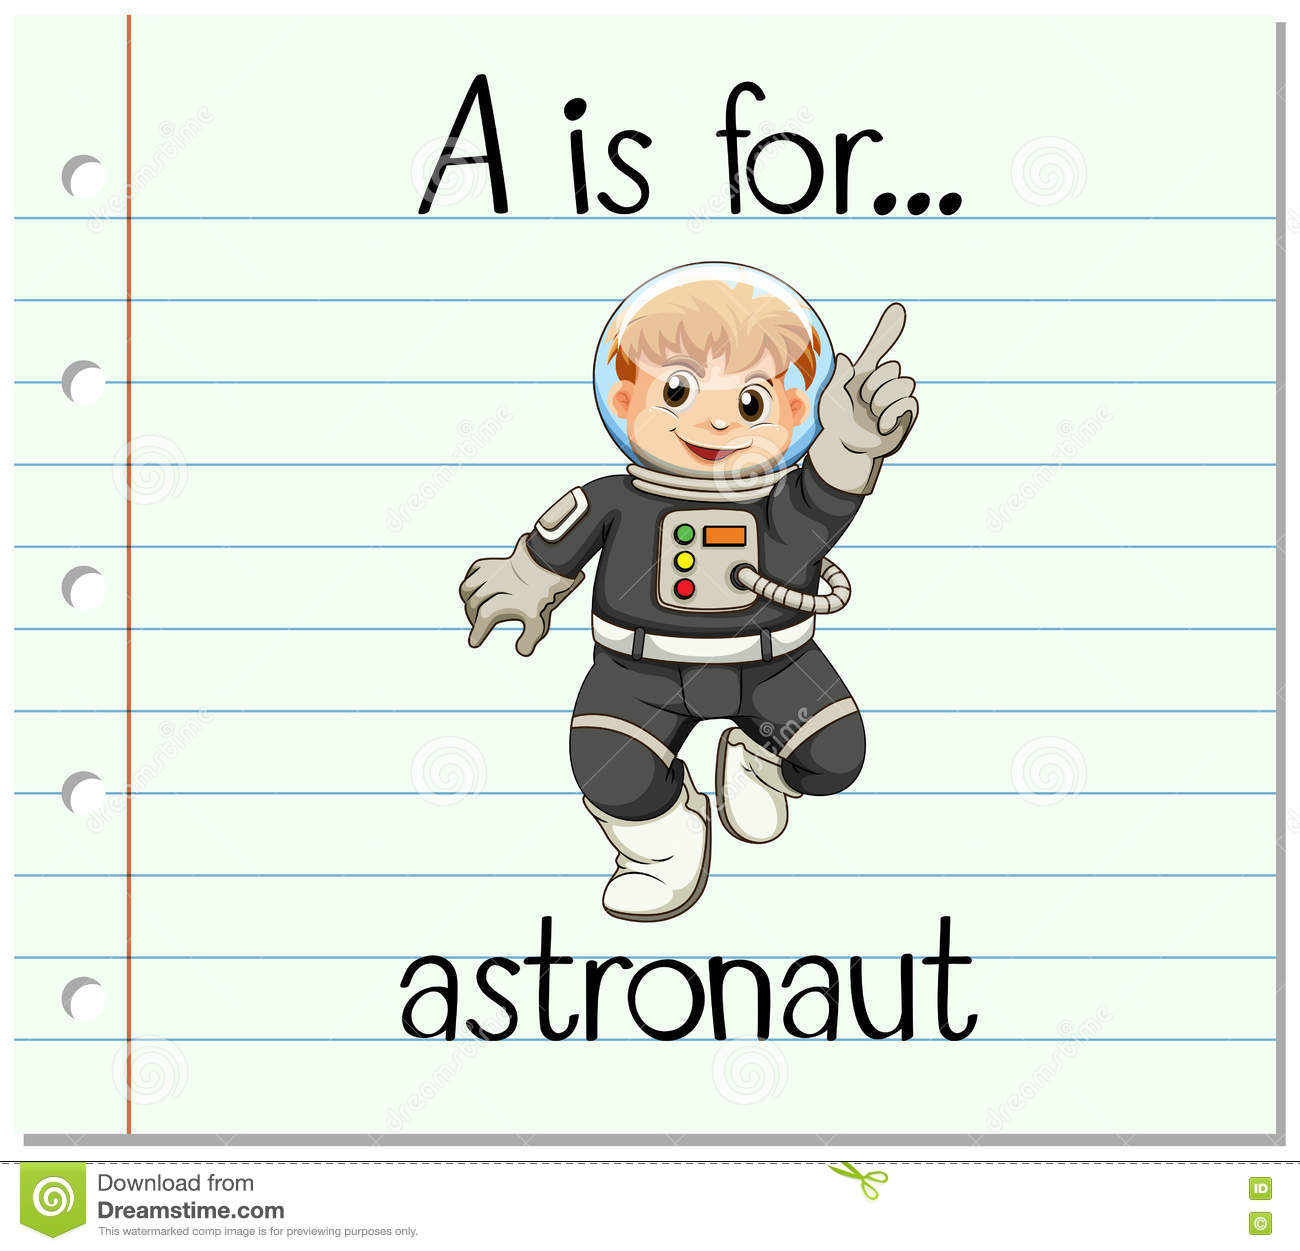 Stock Illustration Flashcard Letter Astronaut Illustration Image71496821 on thumbs up clip art